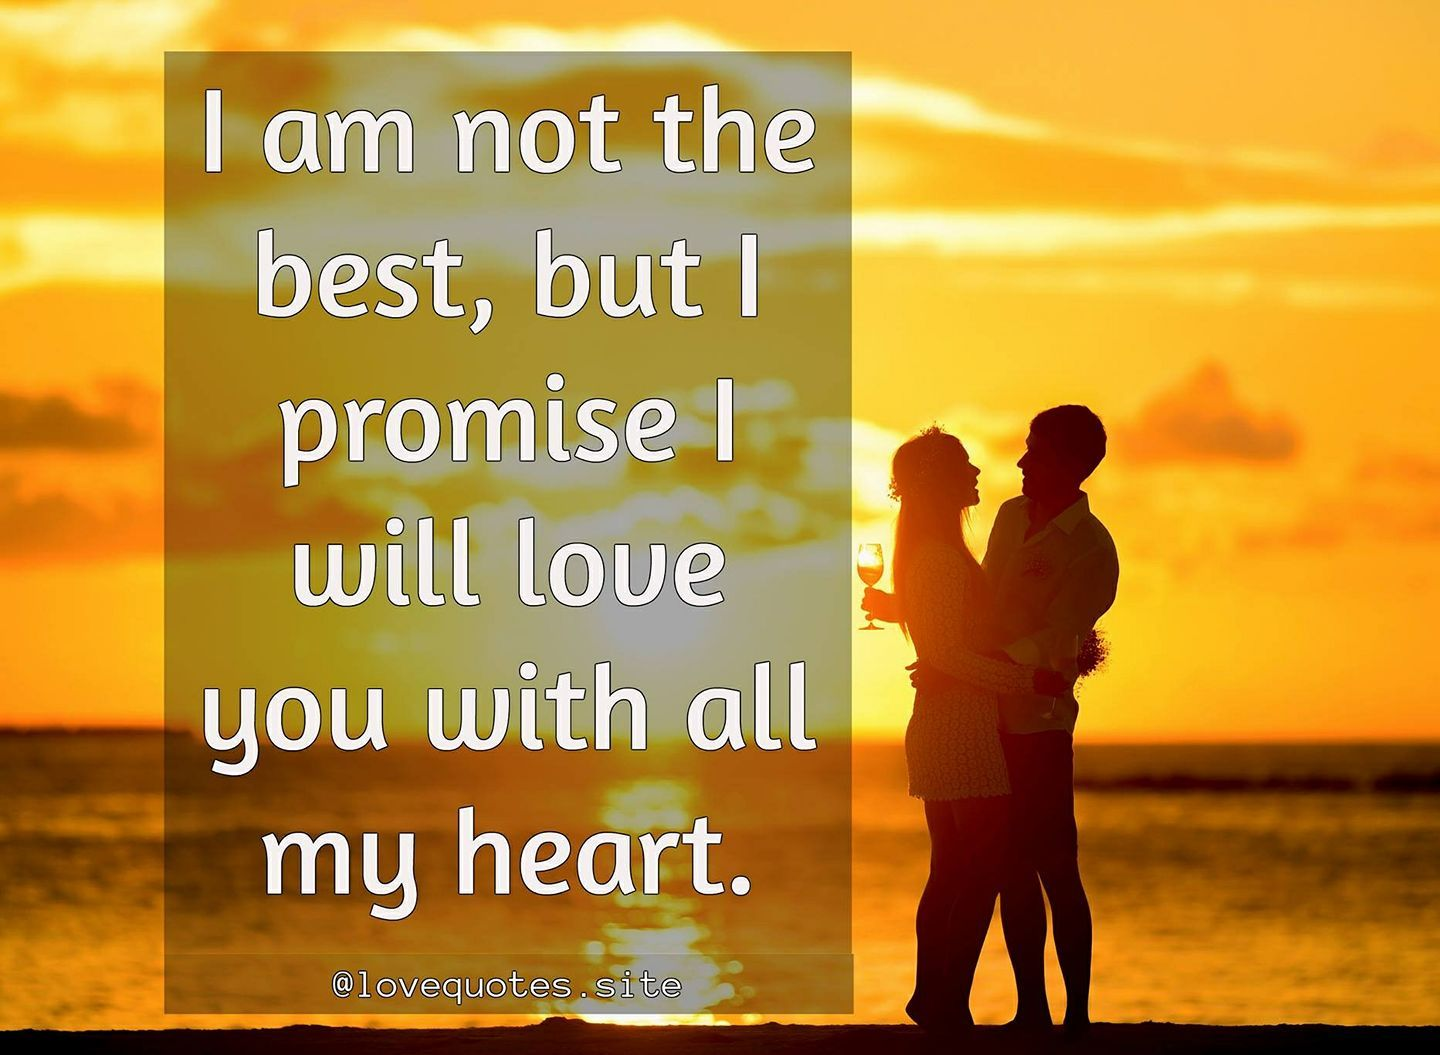 Romantic Love Quotes For Wife Romantic Love Quotes For Your Wife #LoveQuotesForWife | Wife  Romantic Love Quotes For Wife